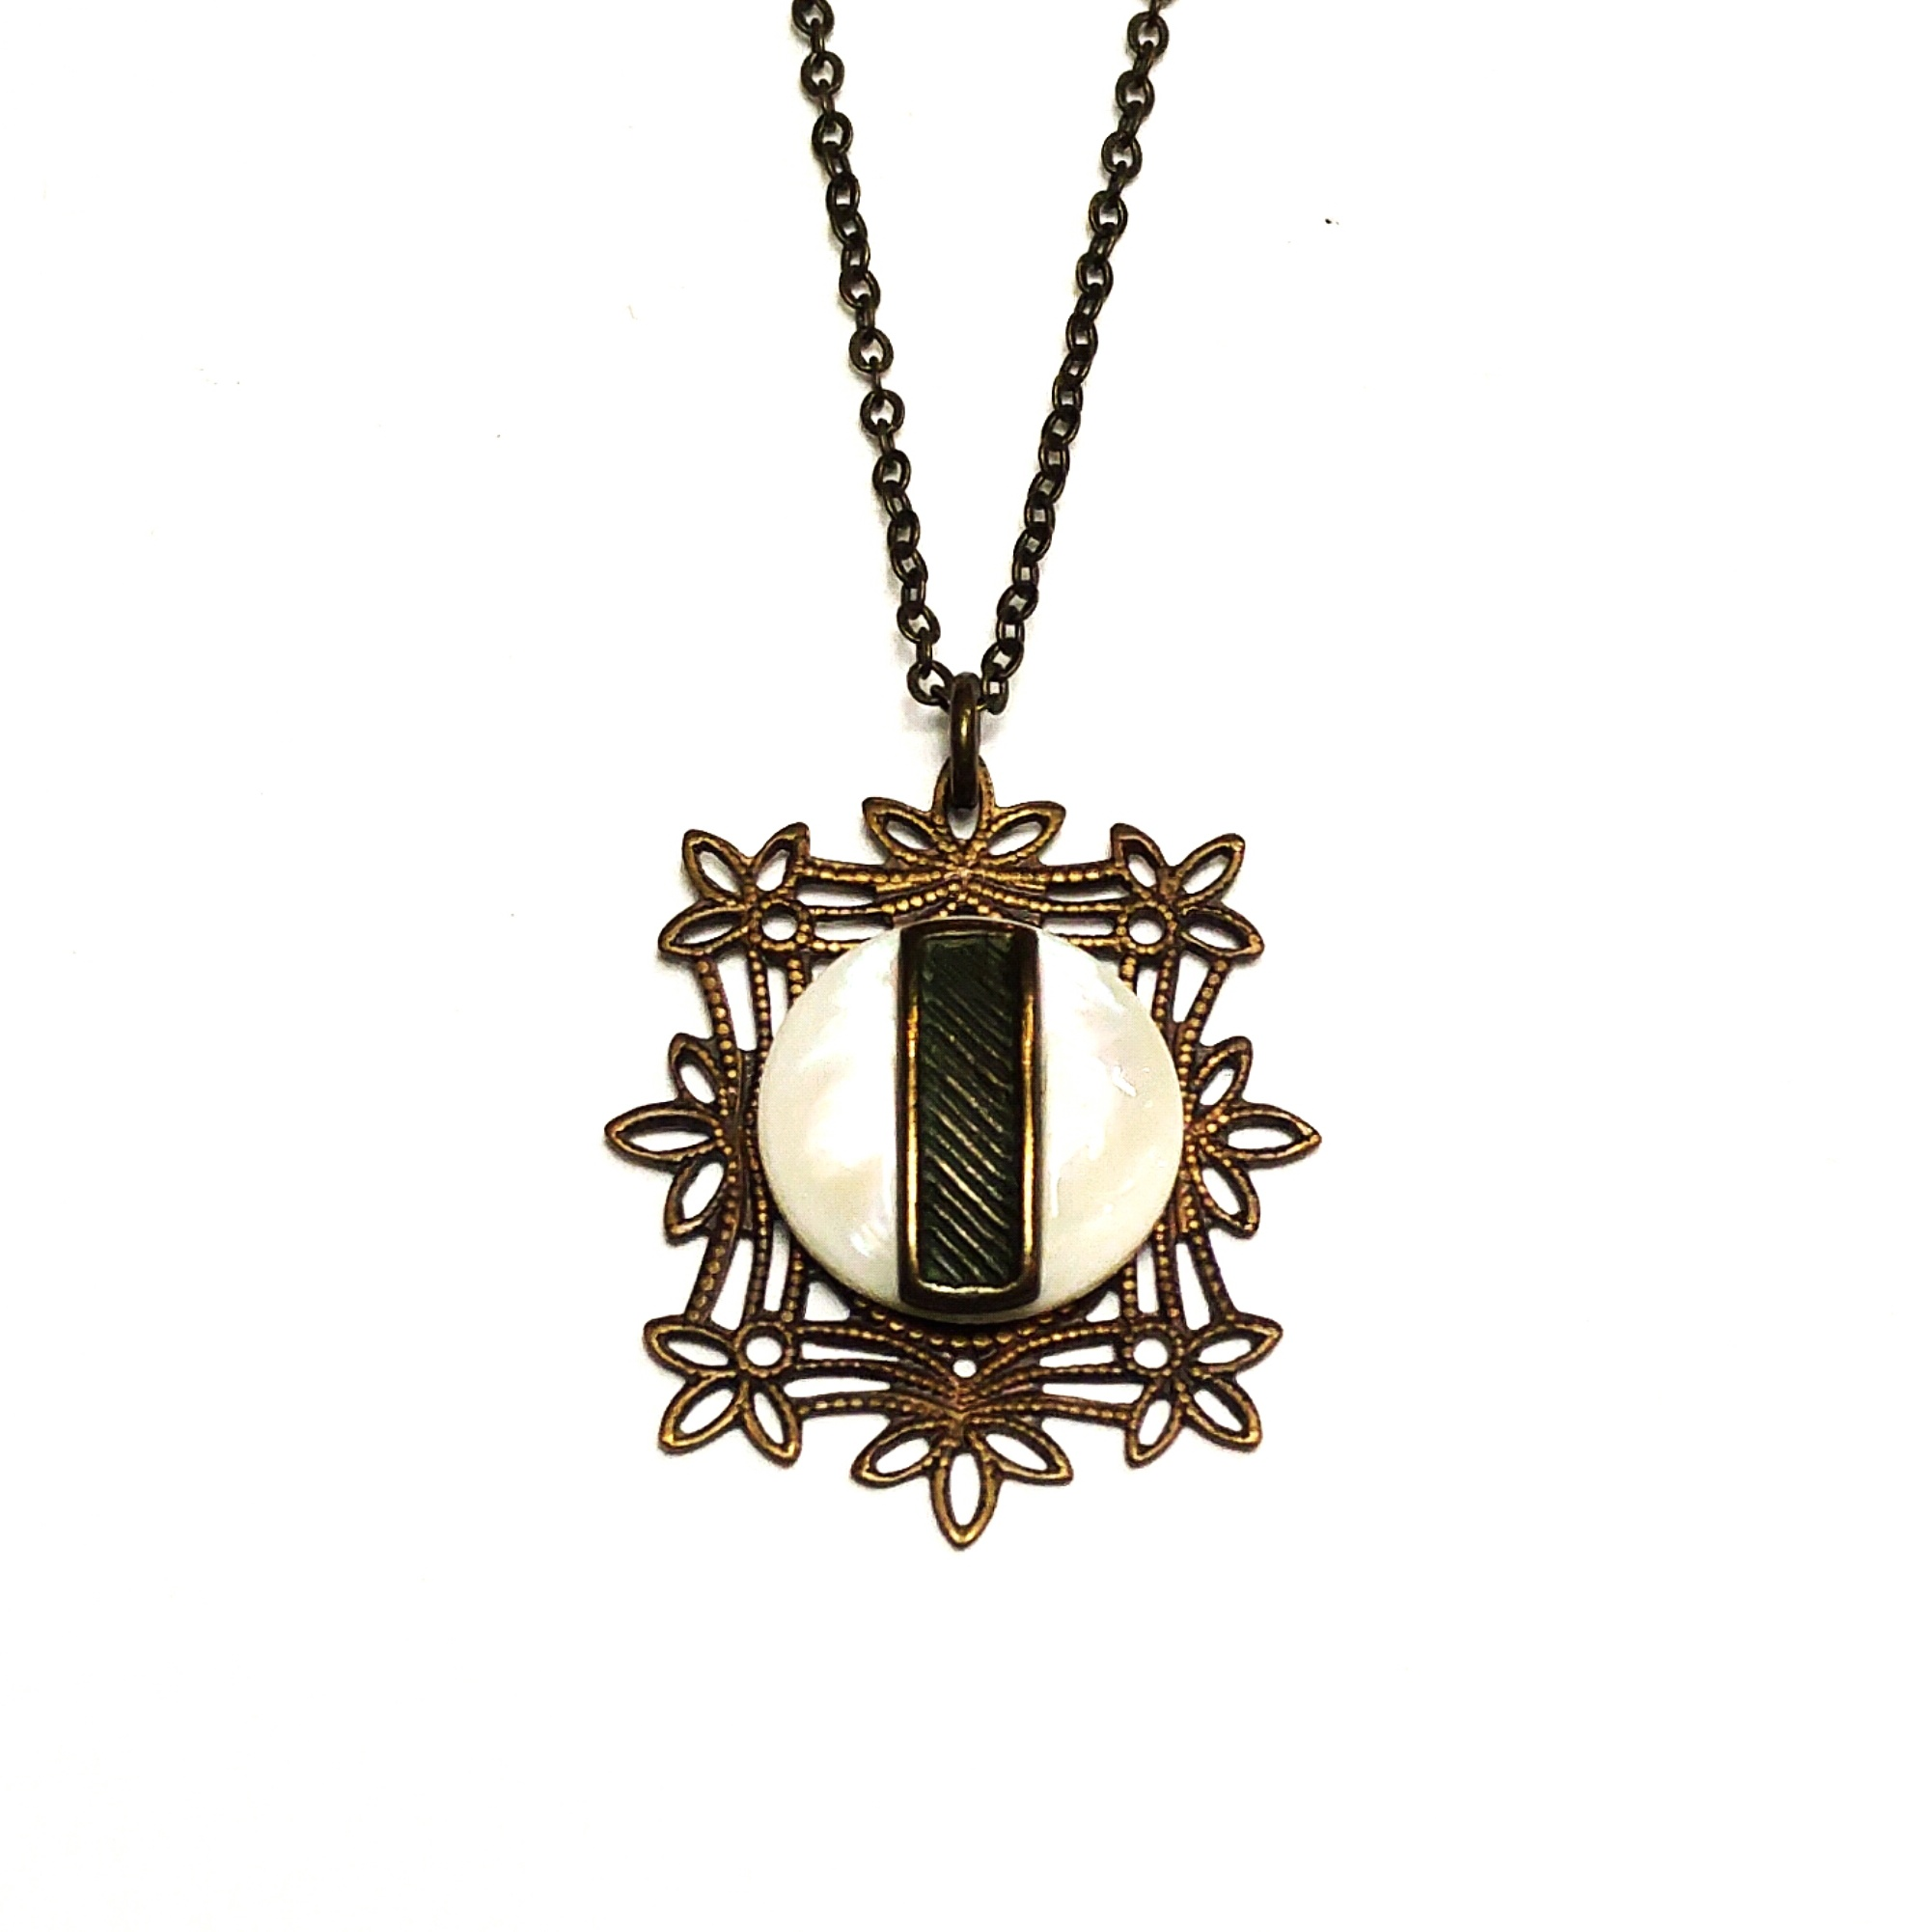 Unique pendant with plenty of lovely small details and a mother of pearl centre